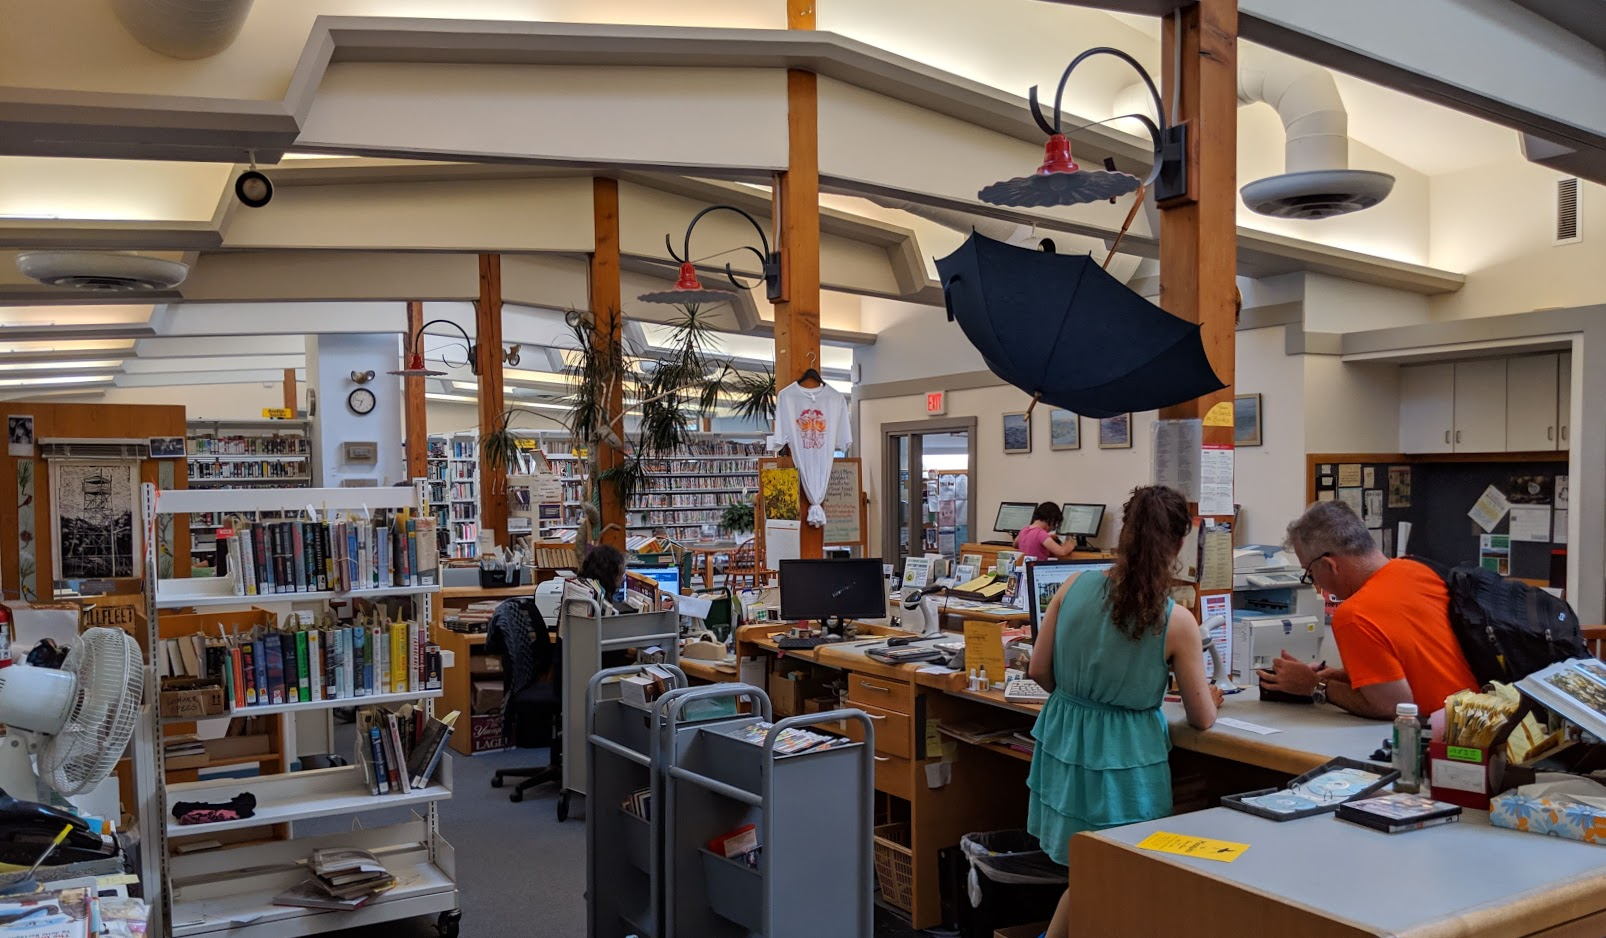 The Wellfleet Circulation Desk.